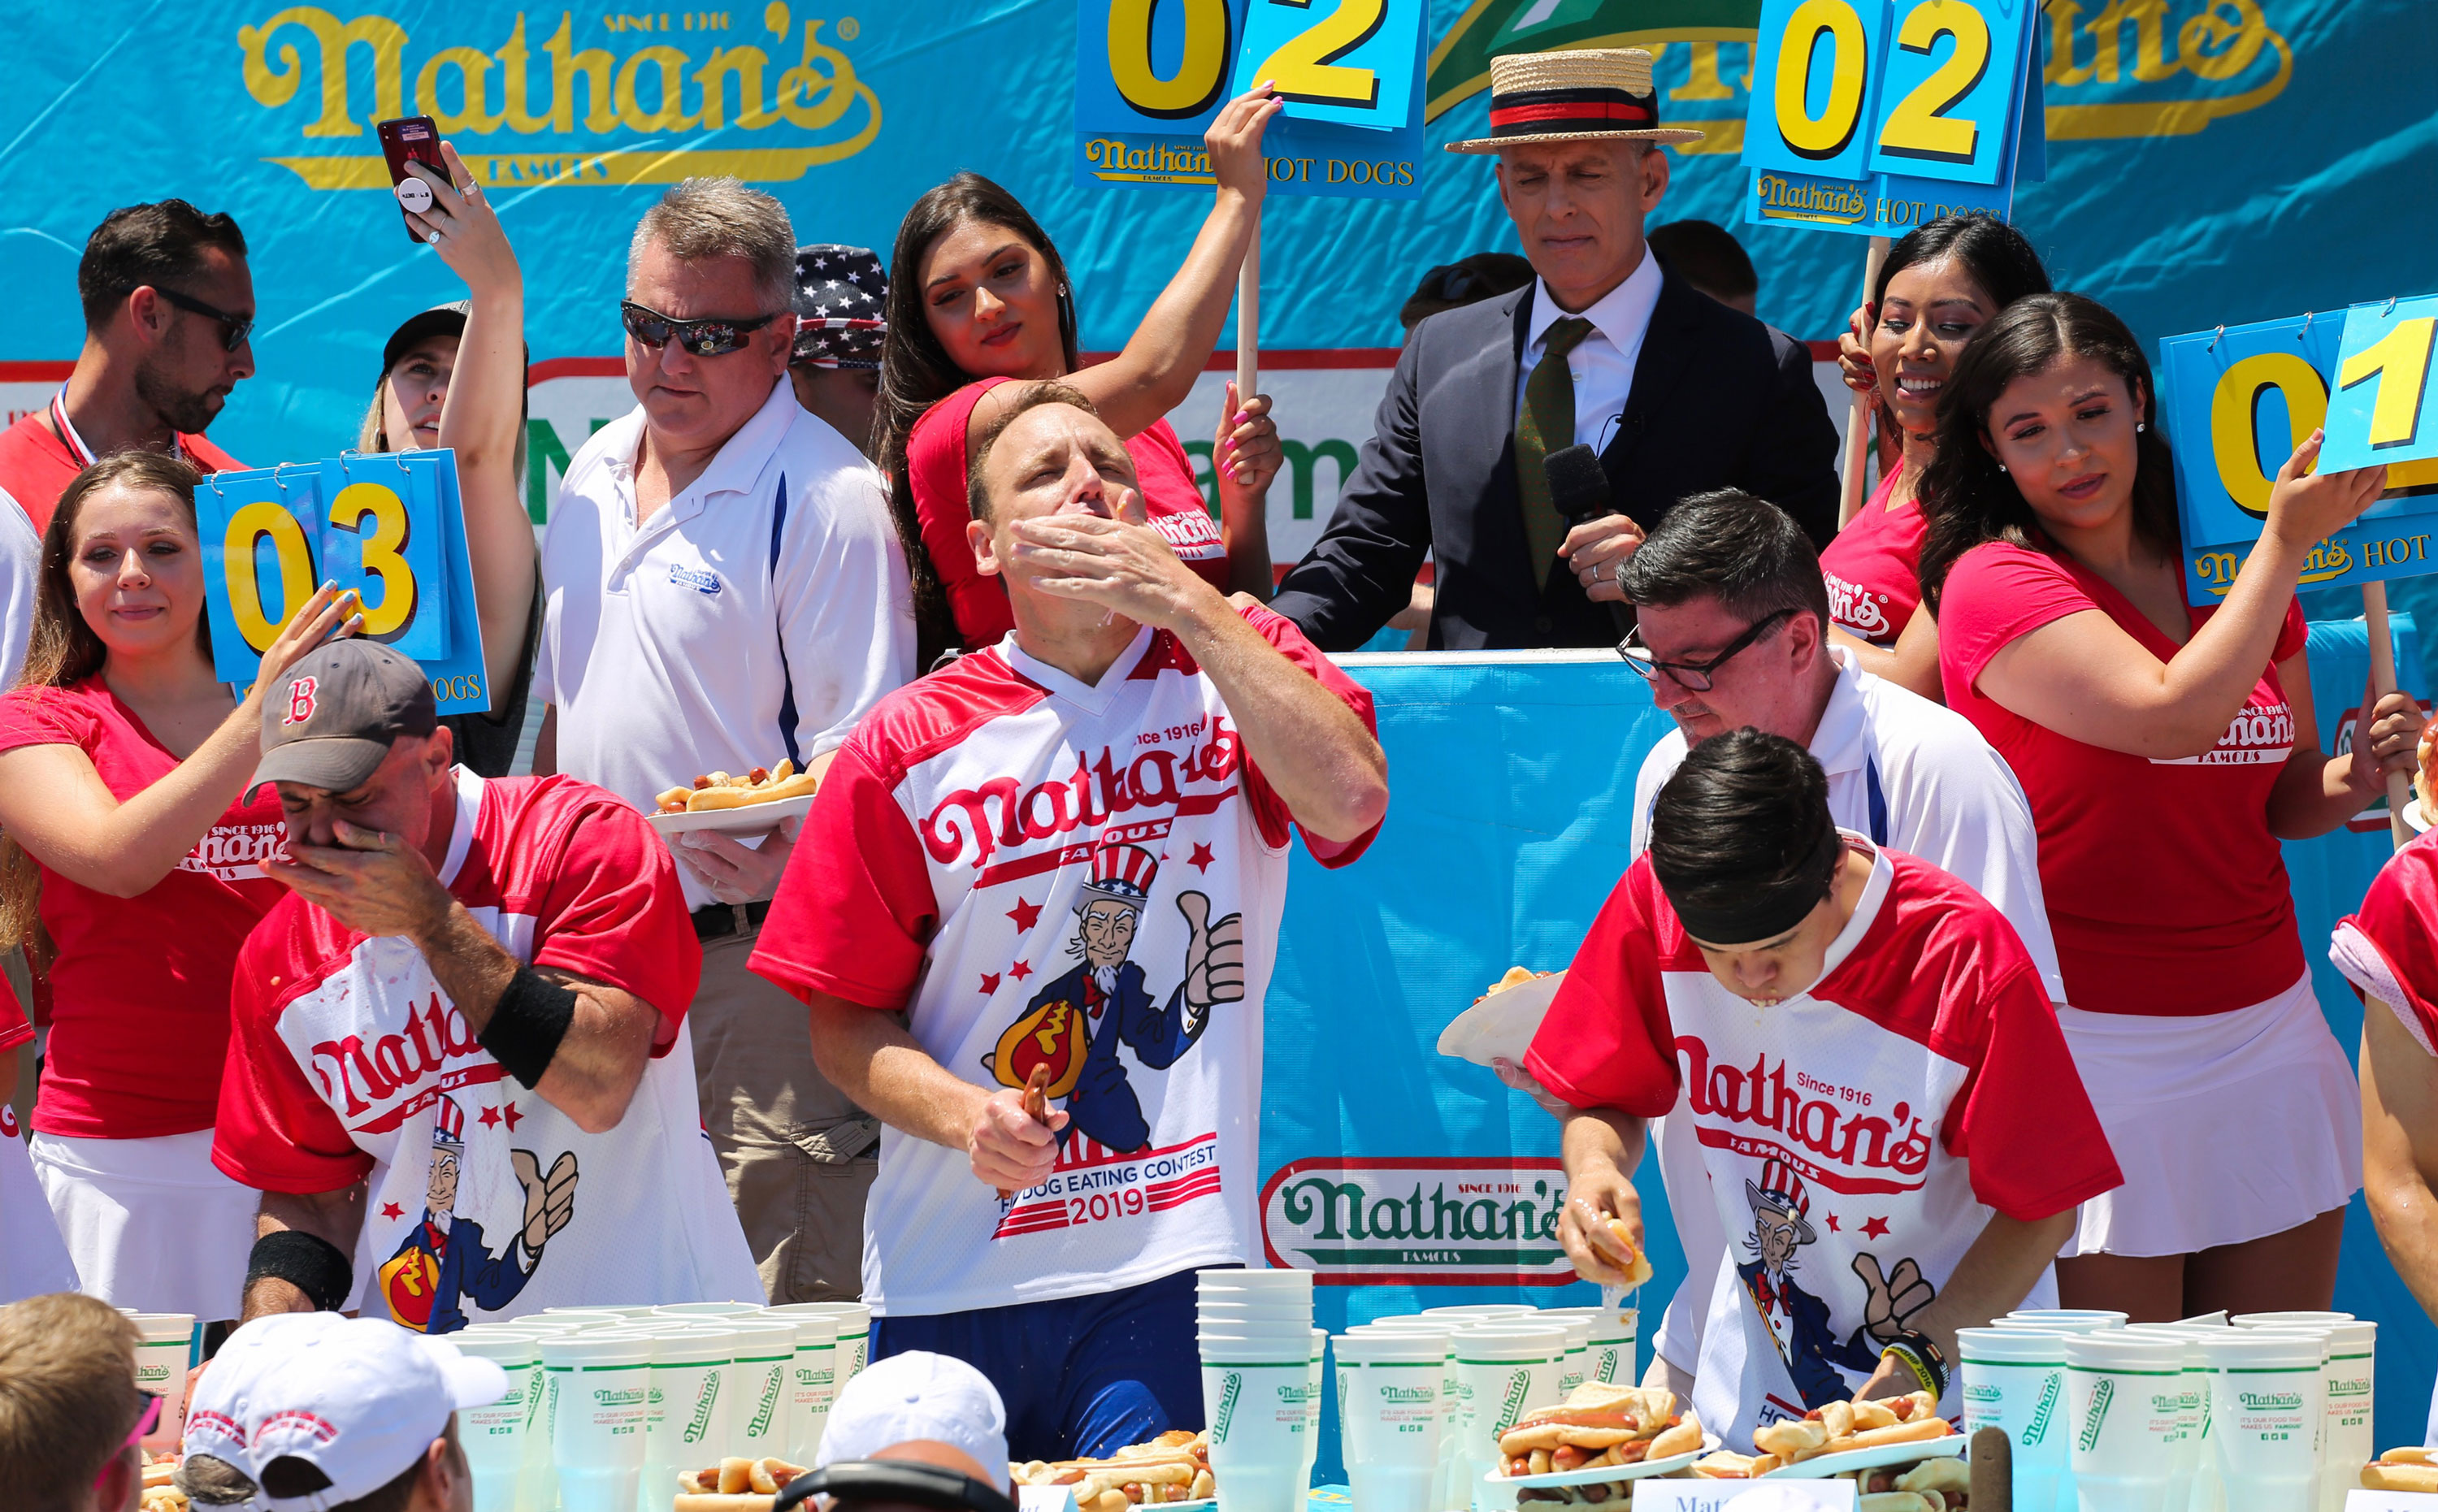 Hey, sports fans: Joey Chestnut and Miki Sudo crush the hot dog contest — again